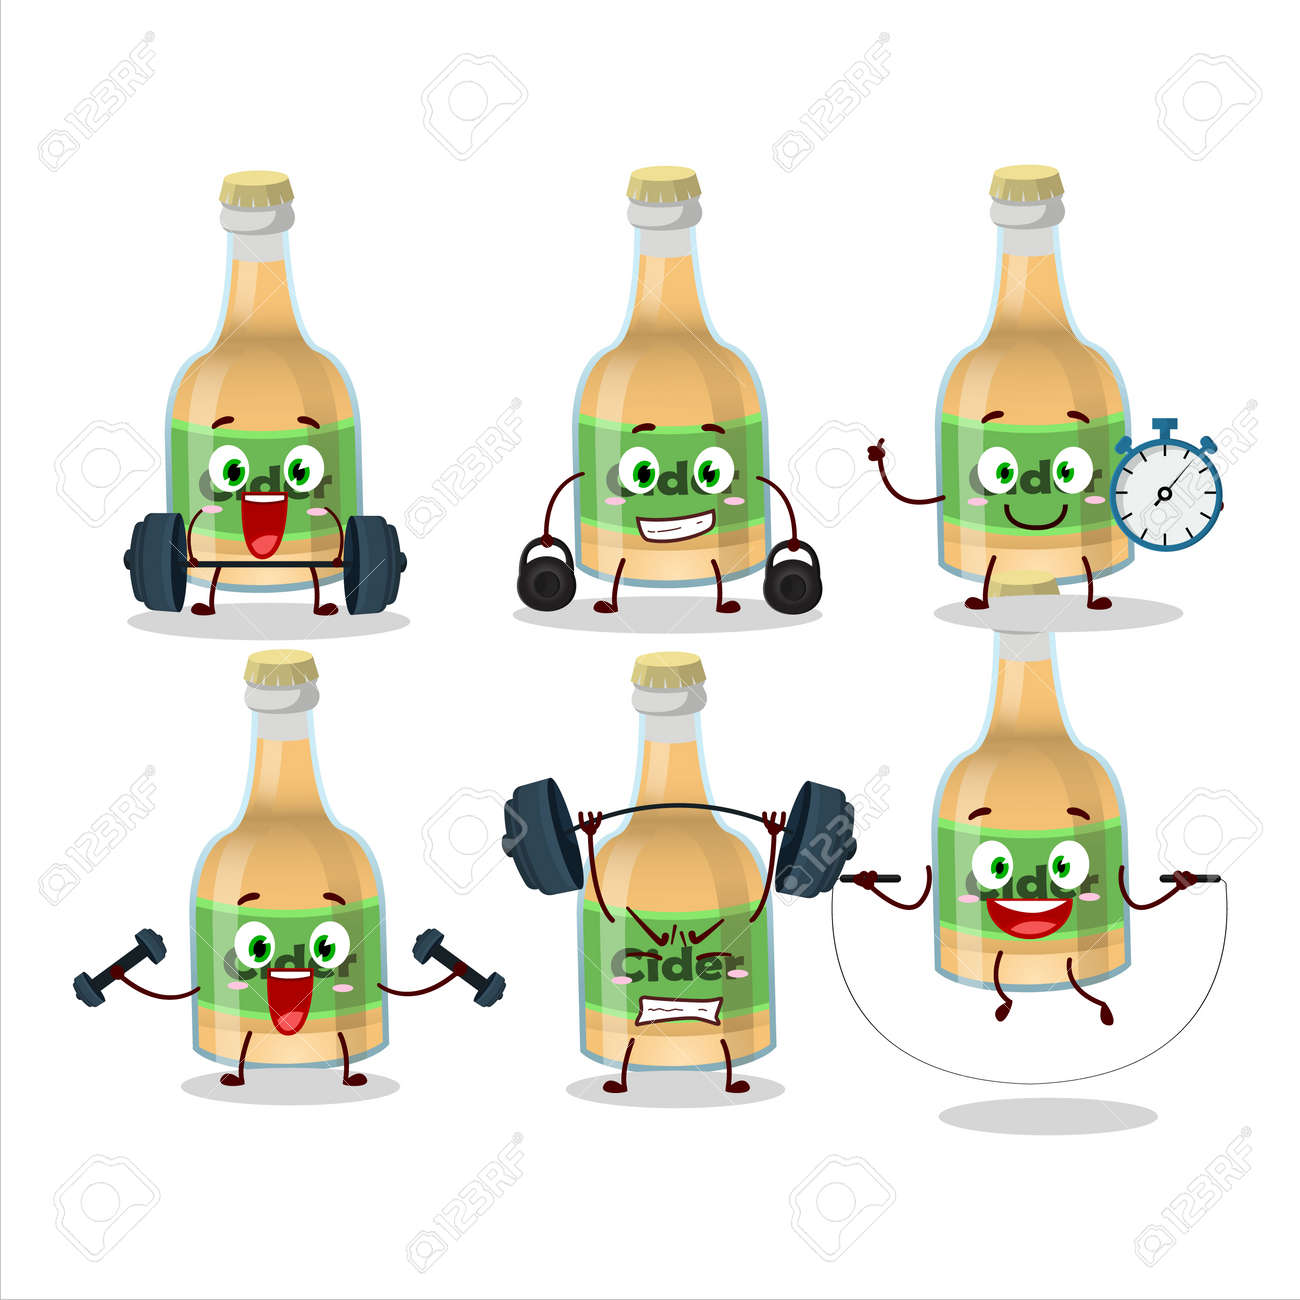 A healthy cider bottle cartoon style trying some tools on Fitness center - 172516085